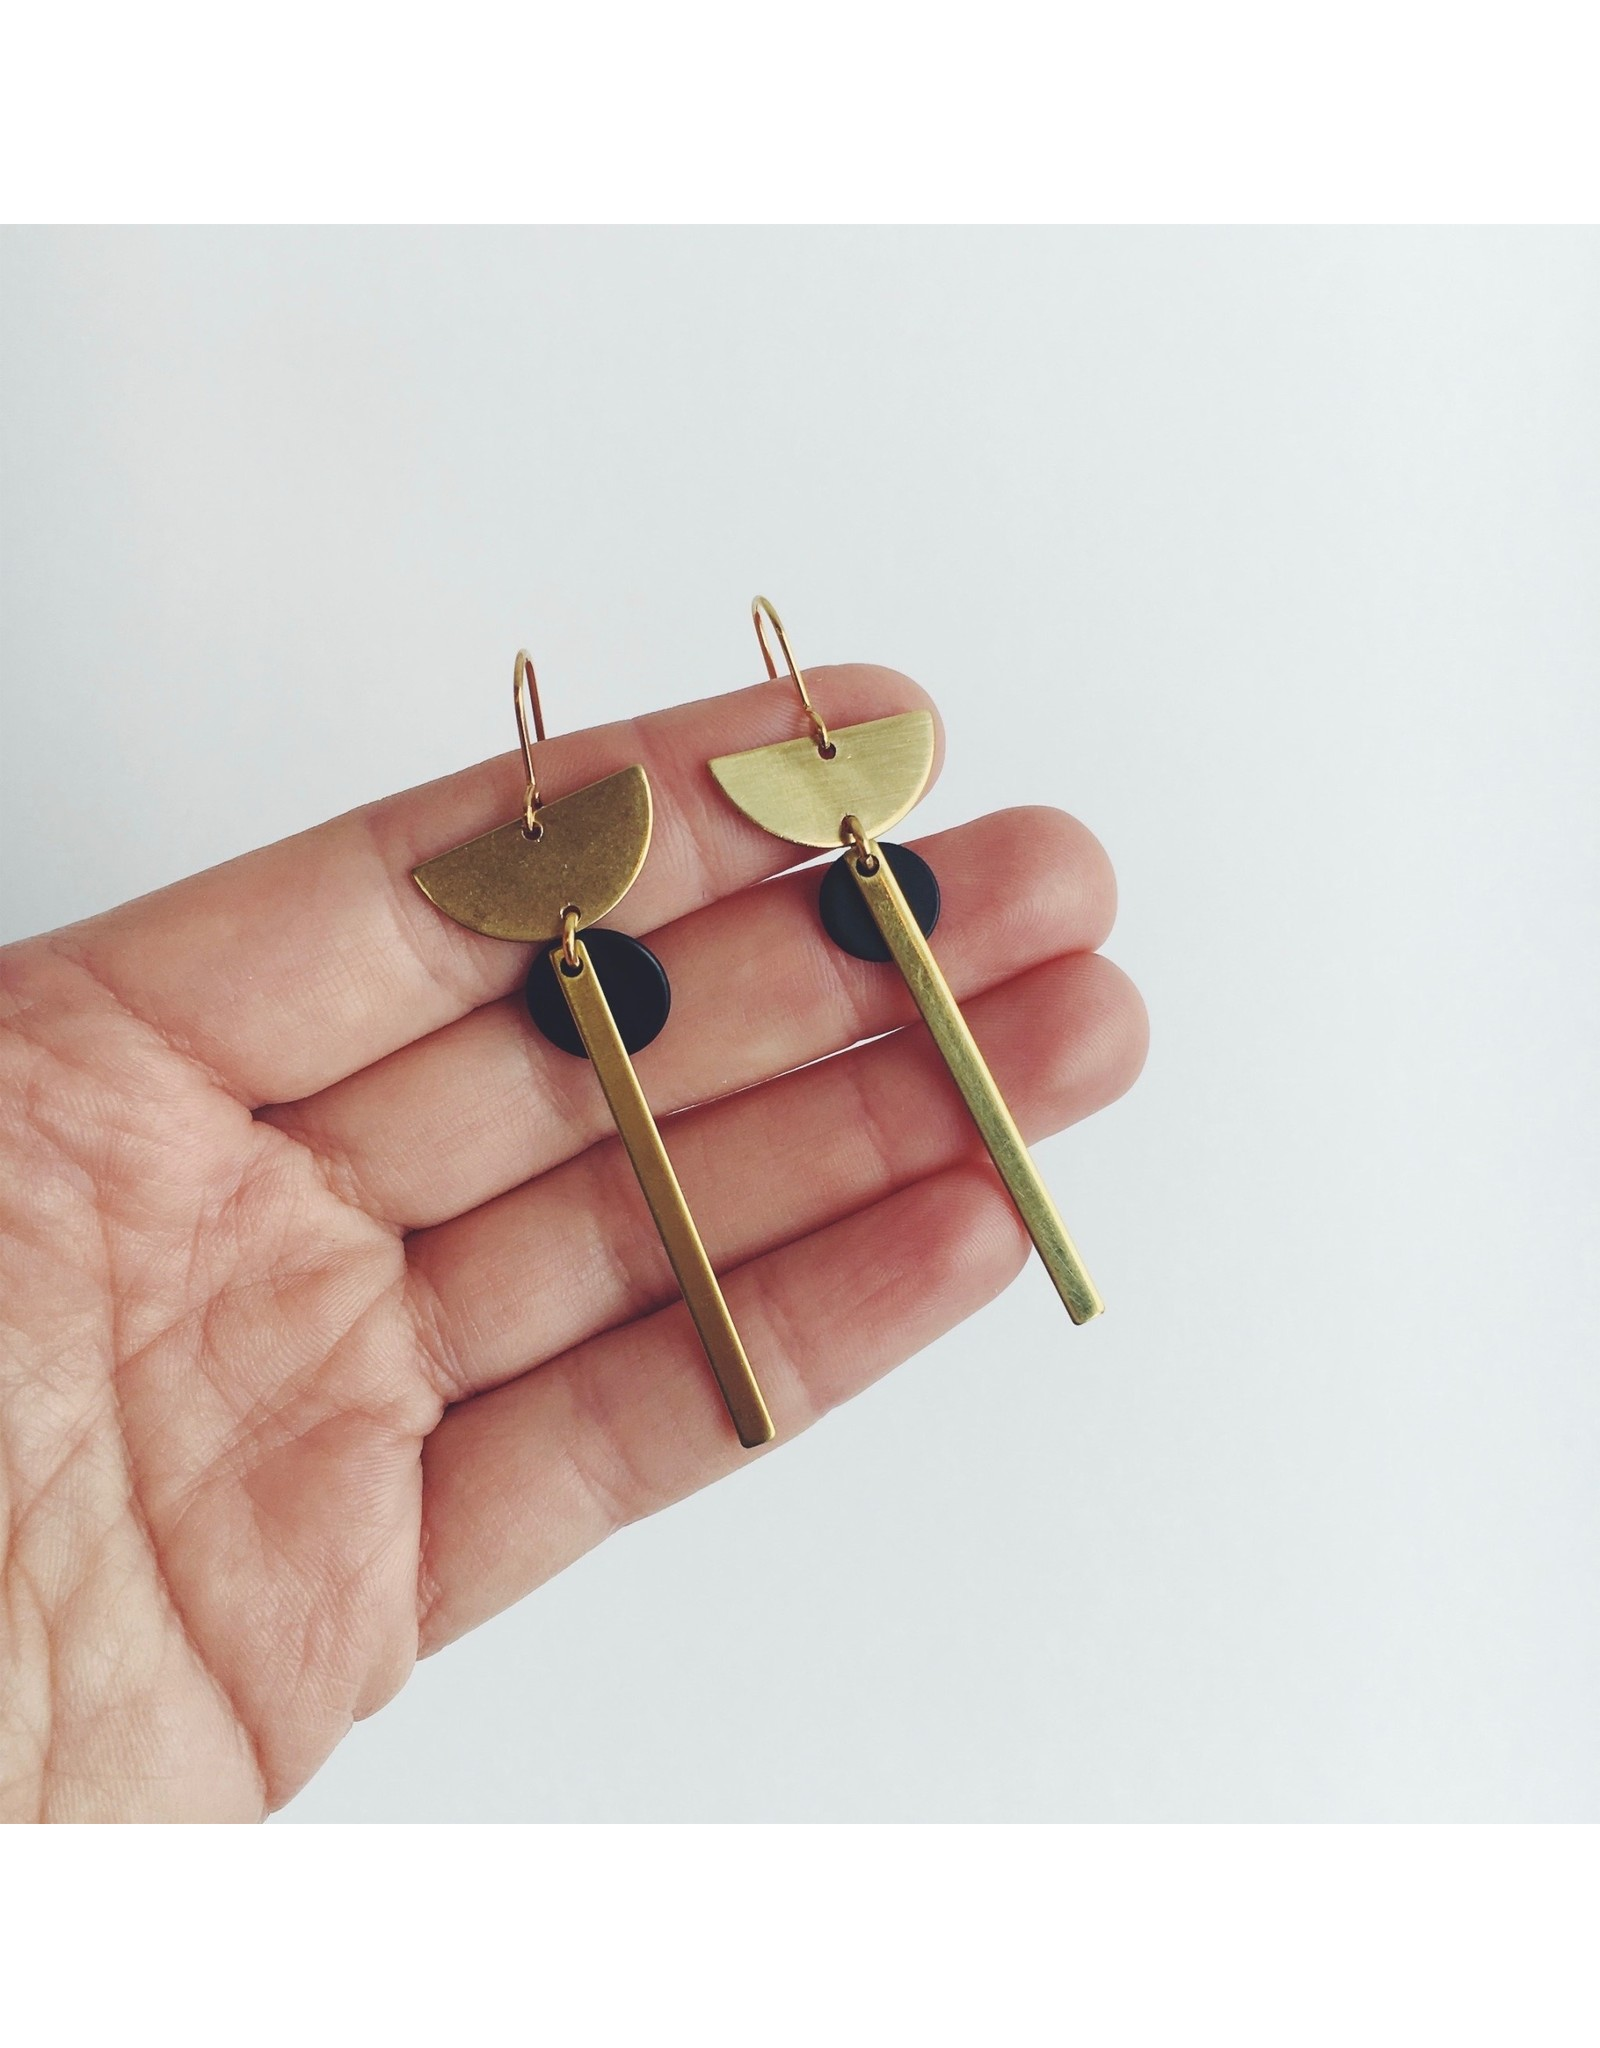 Brass Crescent and Line With Black Disc Earrings